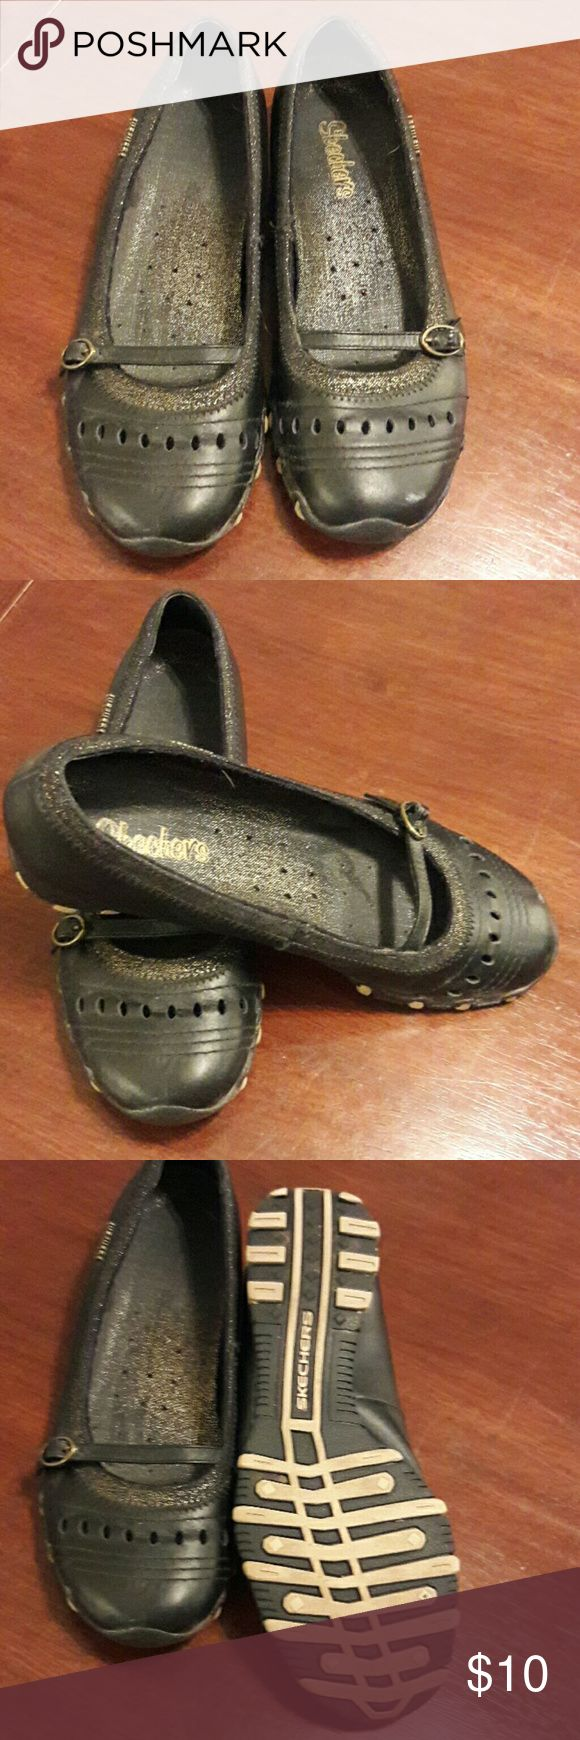 SKECHERS SLIP ON SHOES Excellent condition Skechers slip on shoes. Worn only once Skechers Shoes Athletic Shoes